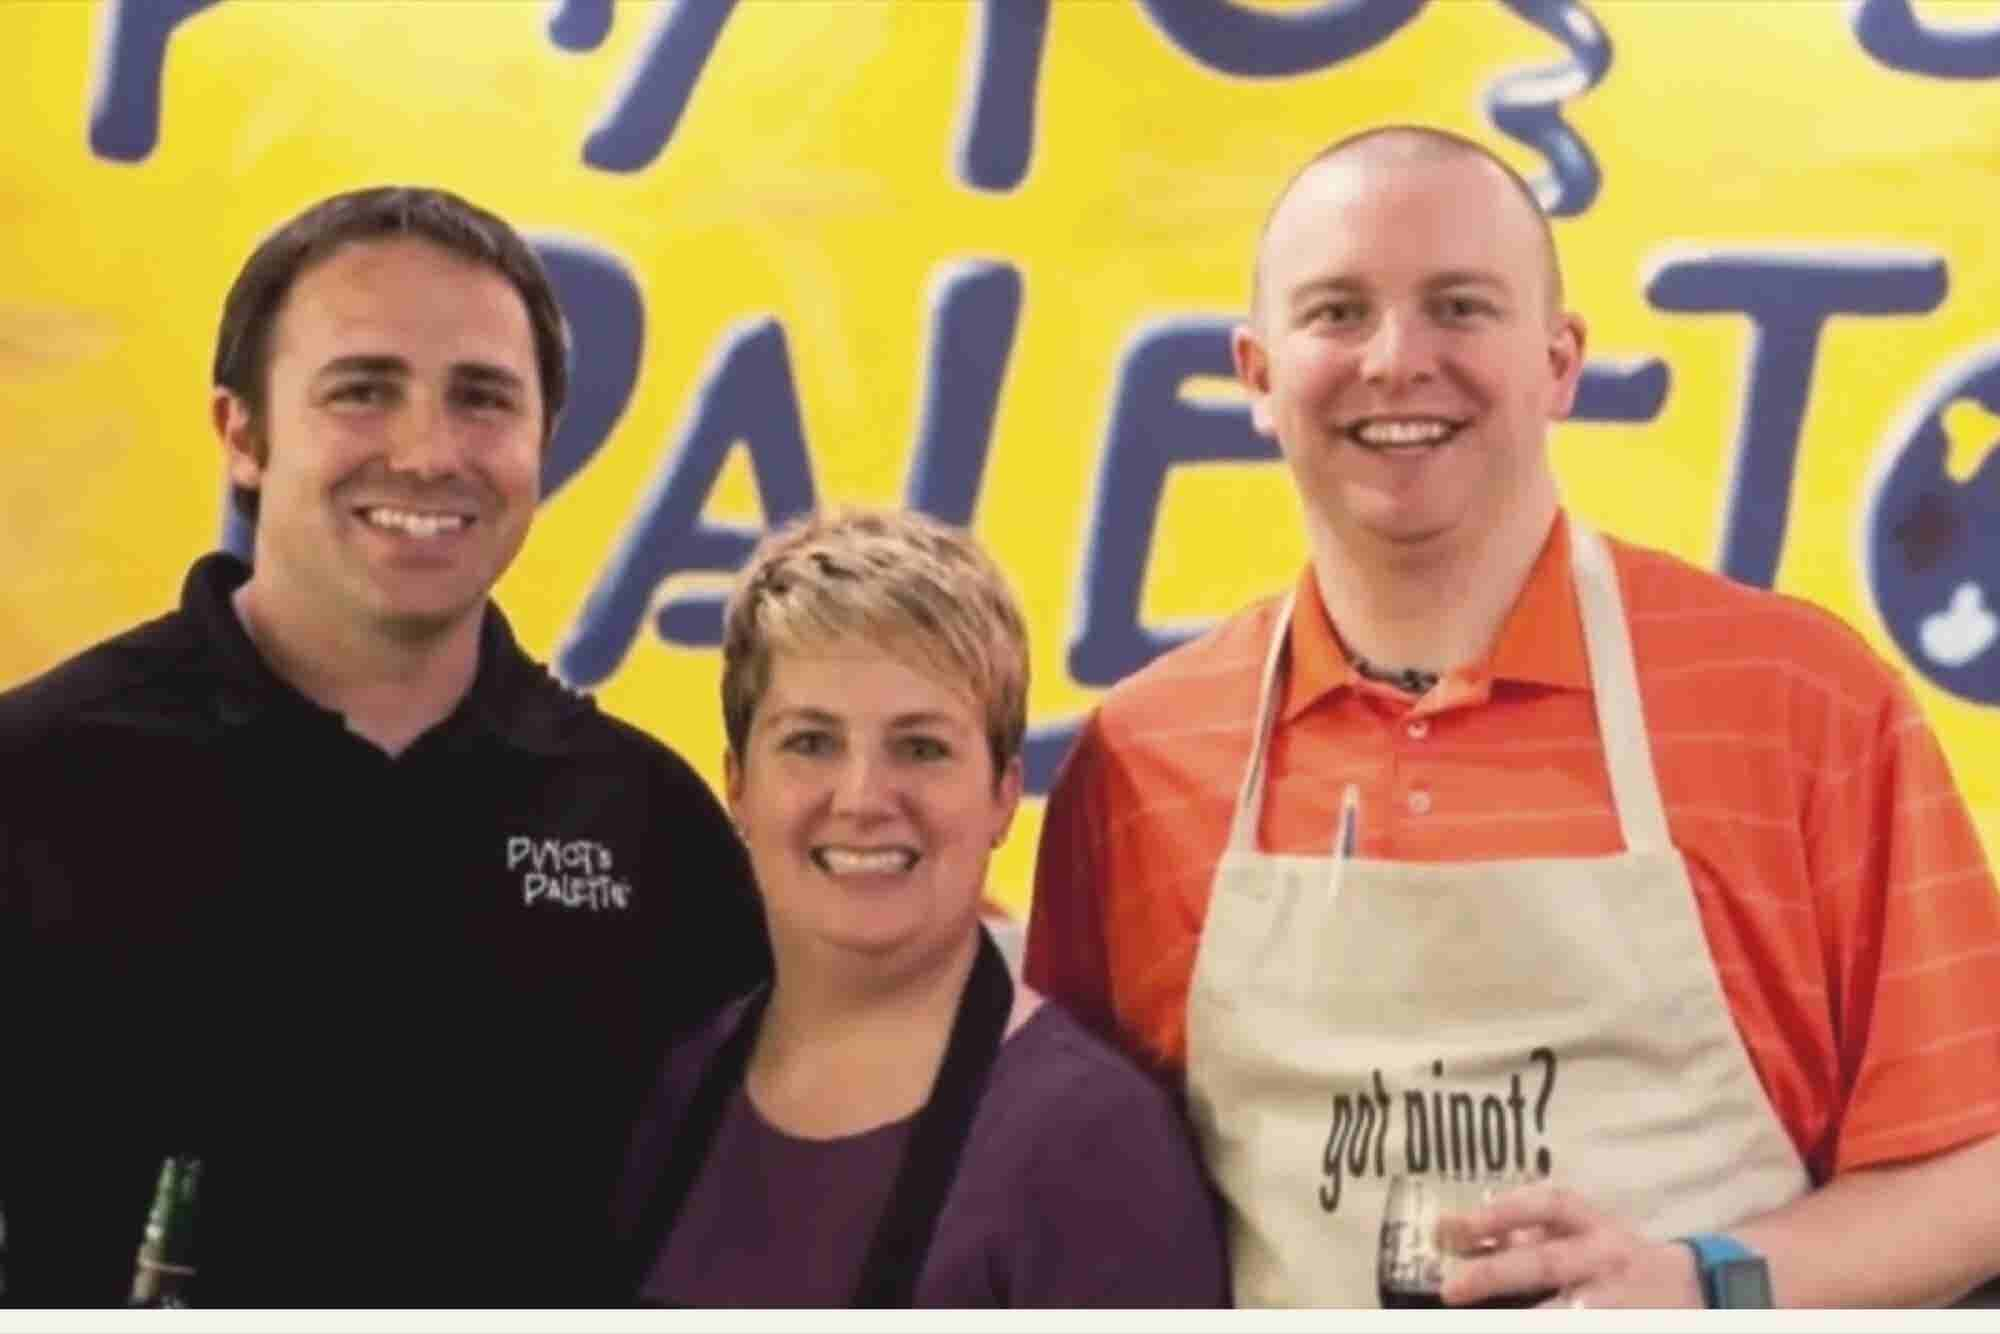 An Artful Expansion: How Lisa Riley Found Success as a Pinot's PaletteFranchisee